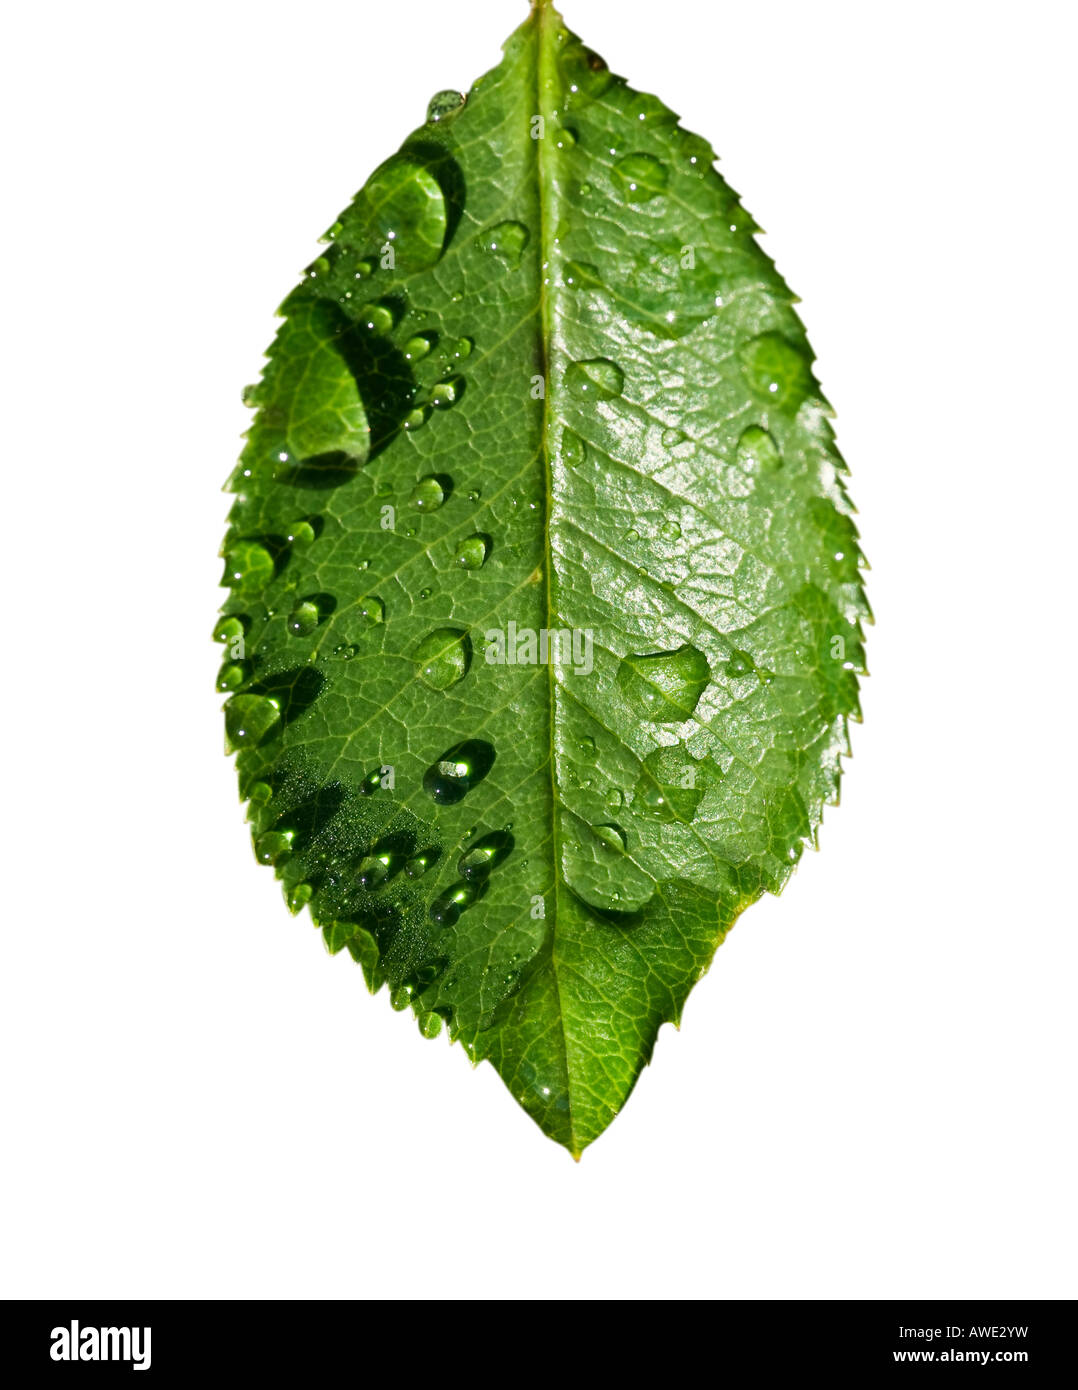 clear water drops on a delicate green leaf - Stock Image